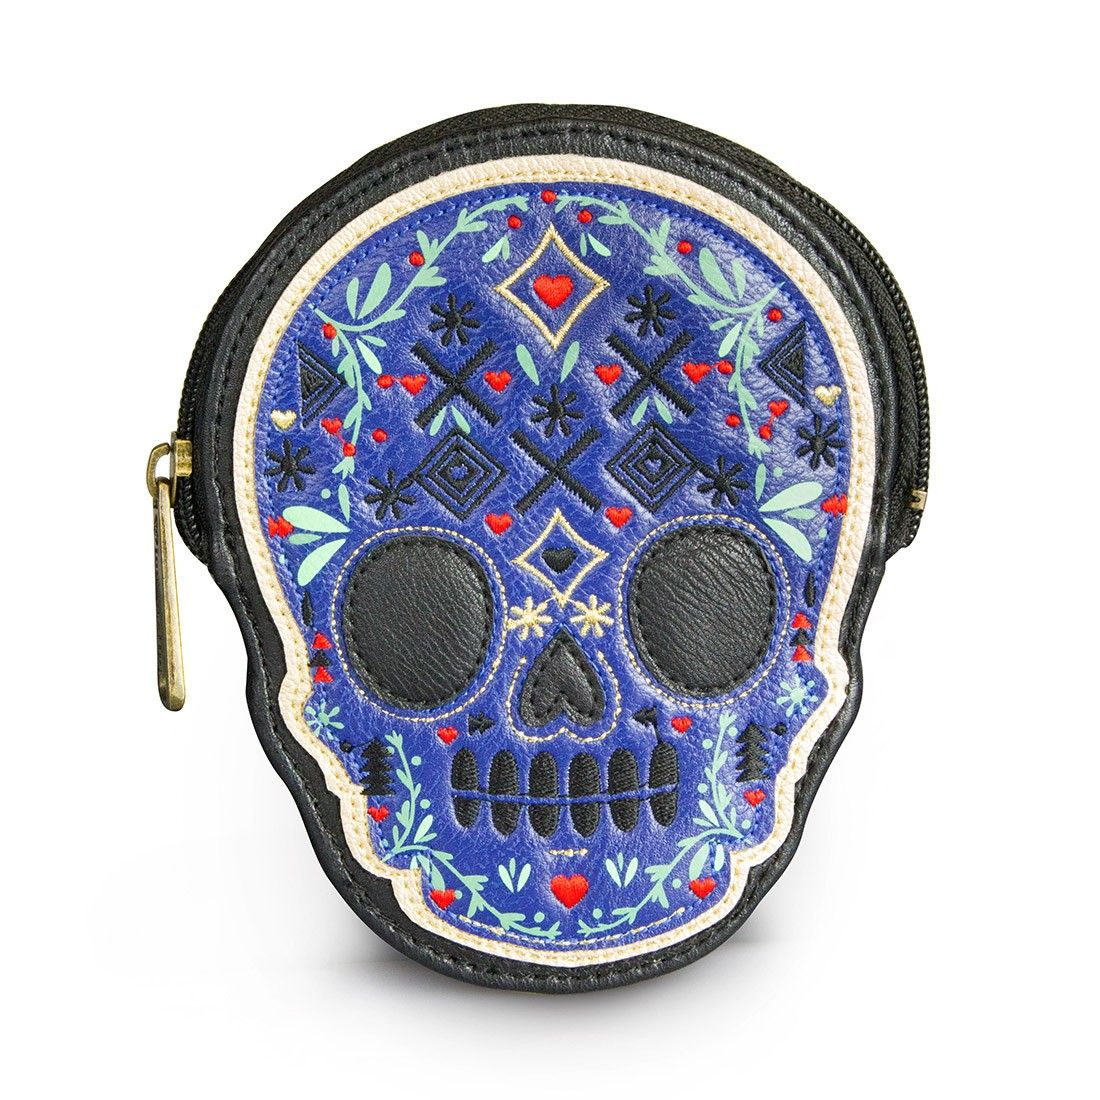 Loungefly Skull With Metallic Print Coin Bag - View All - Bags